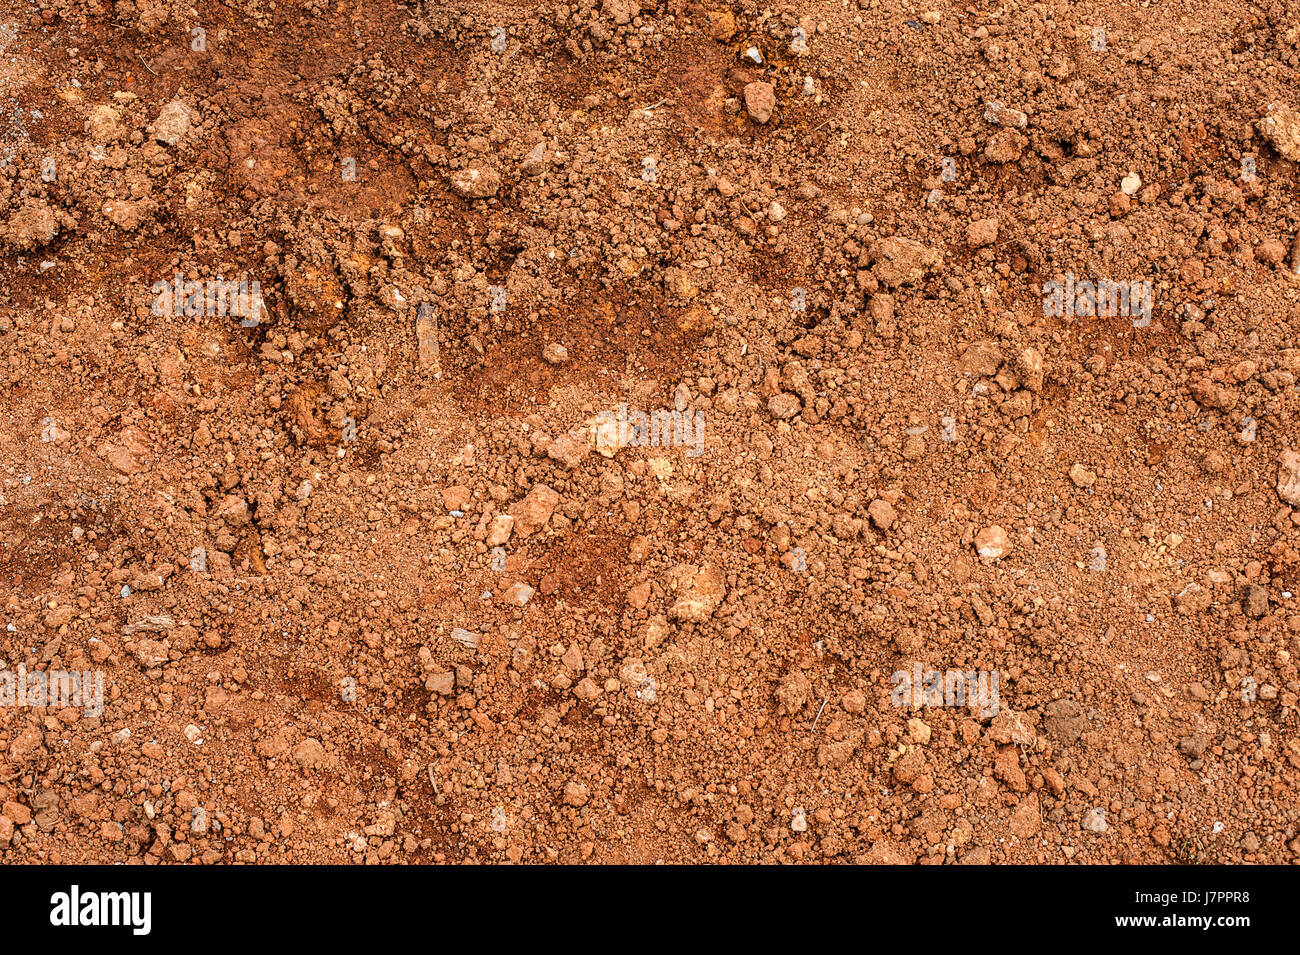 Tropical laterite soil or red earth background. Red mars seamless sand background. Top view - Stock Image